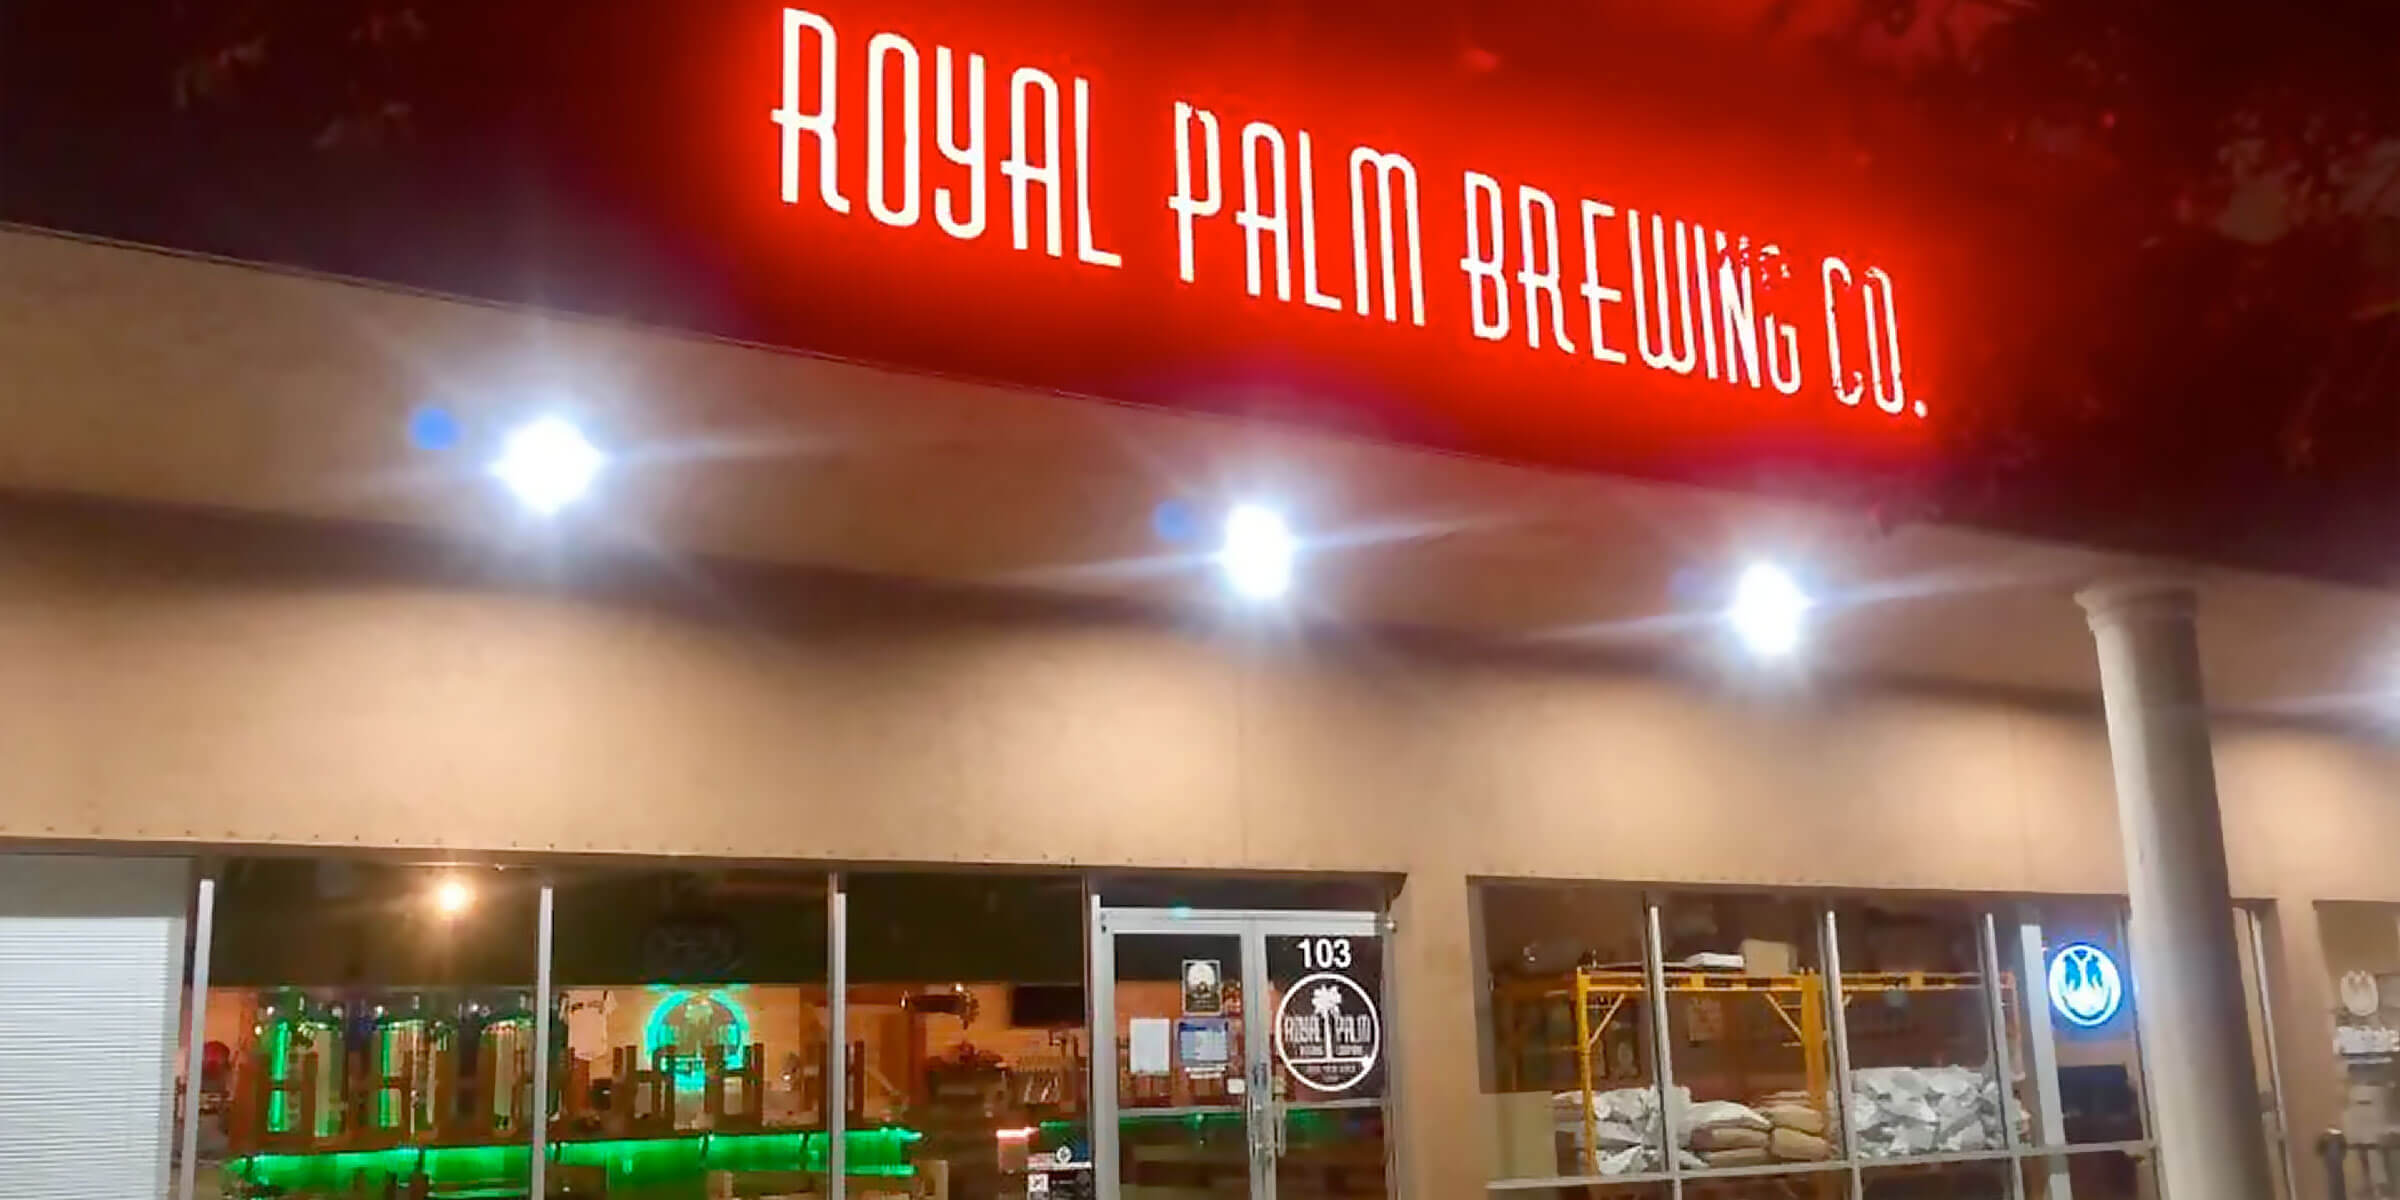 Outside the Royal Palm Brewing Company in Royal Palm Beach, Florida